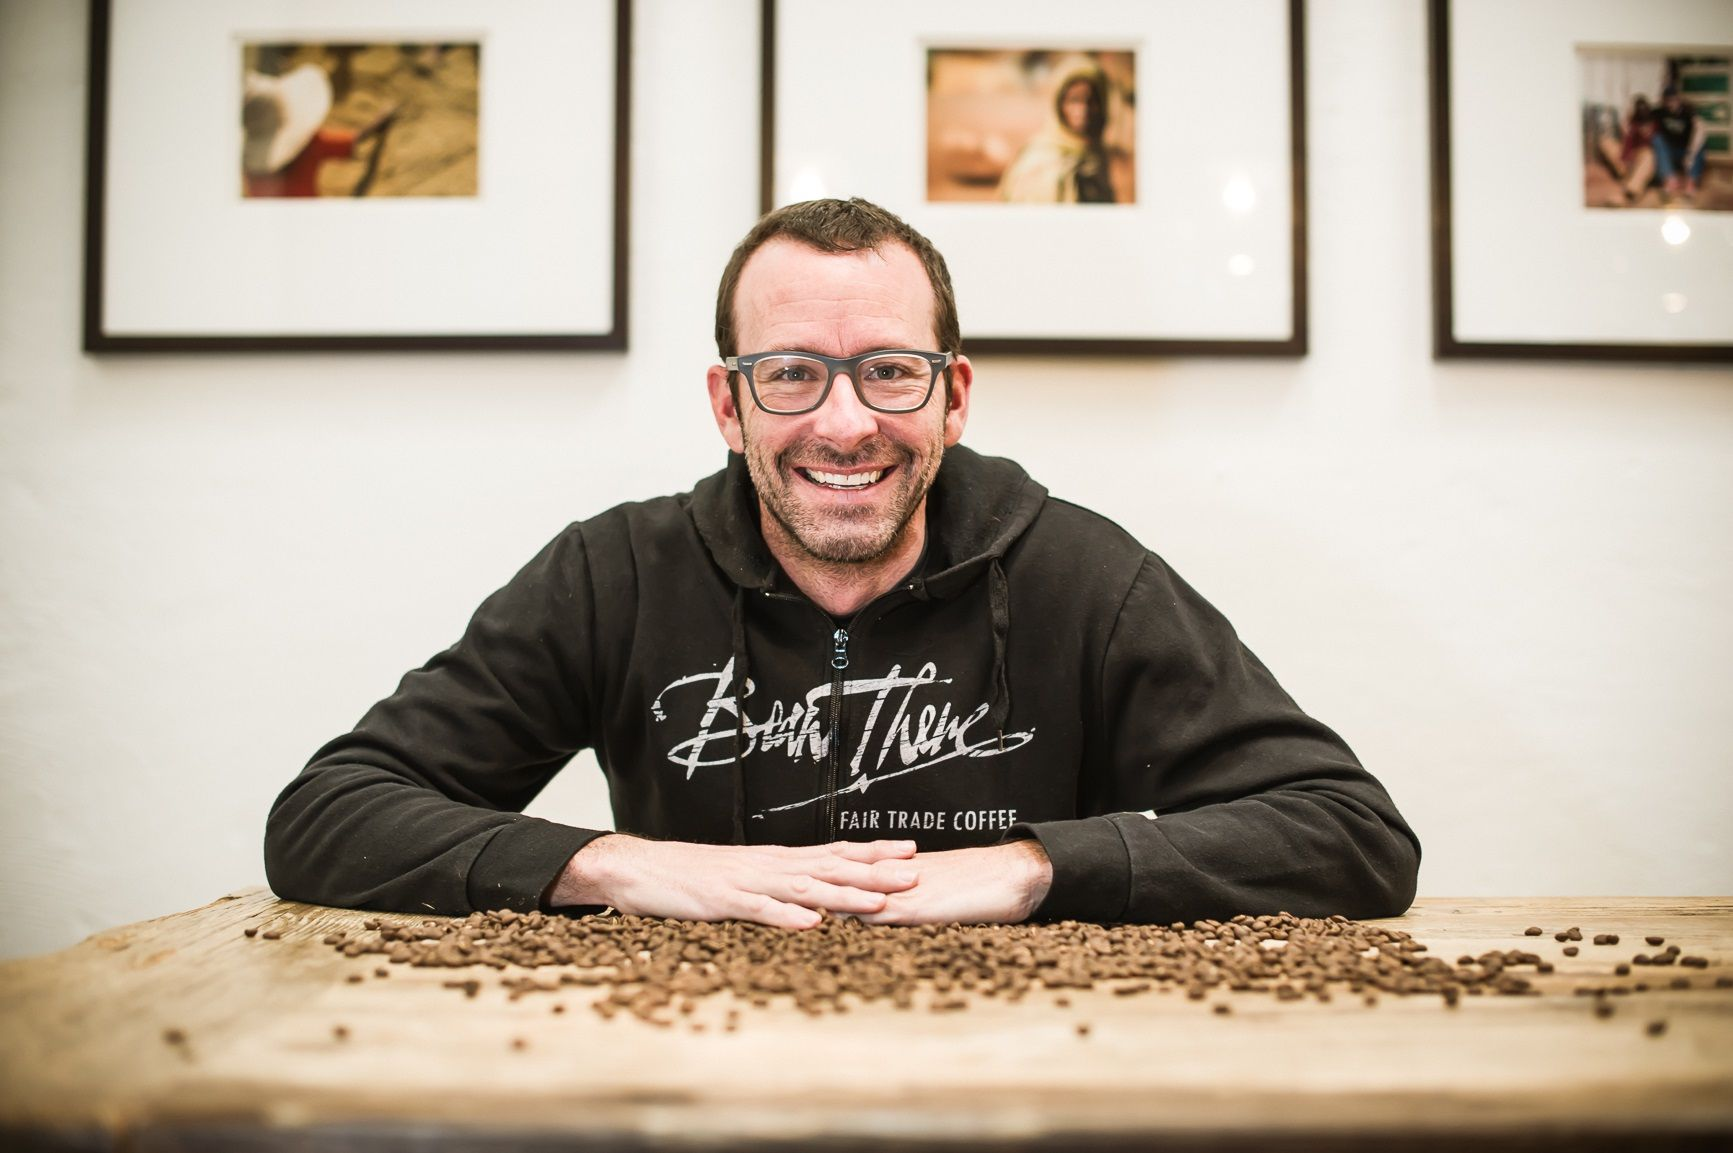 #biztrends2018: Coffee Will Continue To Influence The World photo